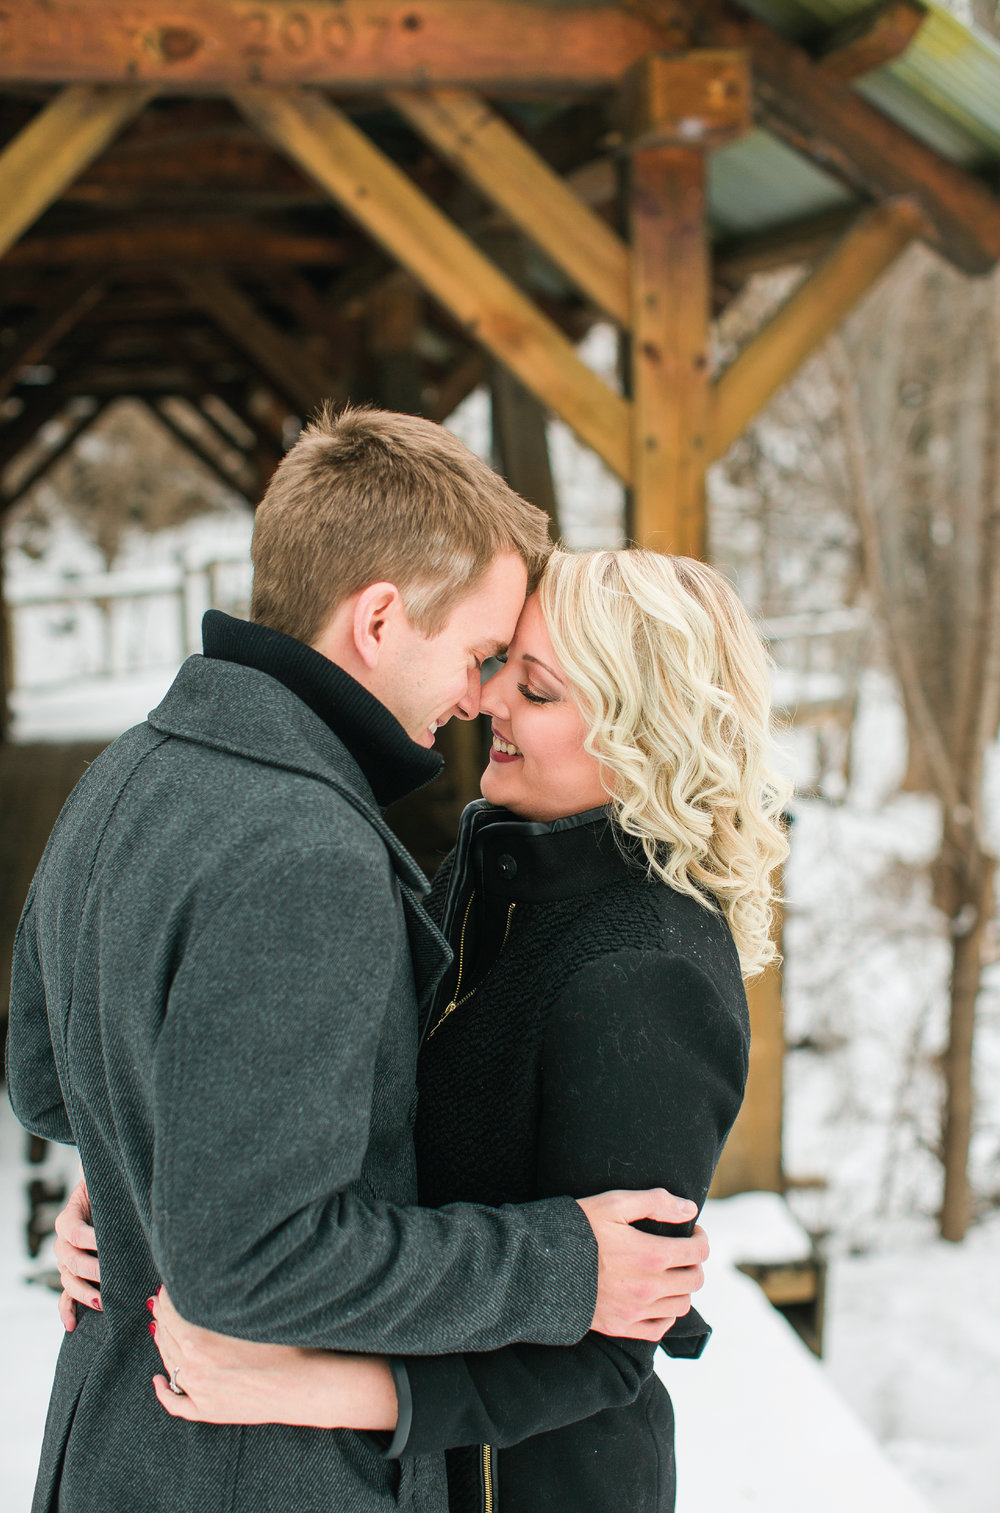 Minnesota engagement photos in Taylors Falls couple snuggling for kiss in winter coats